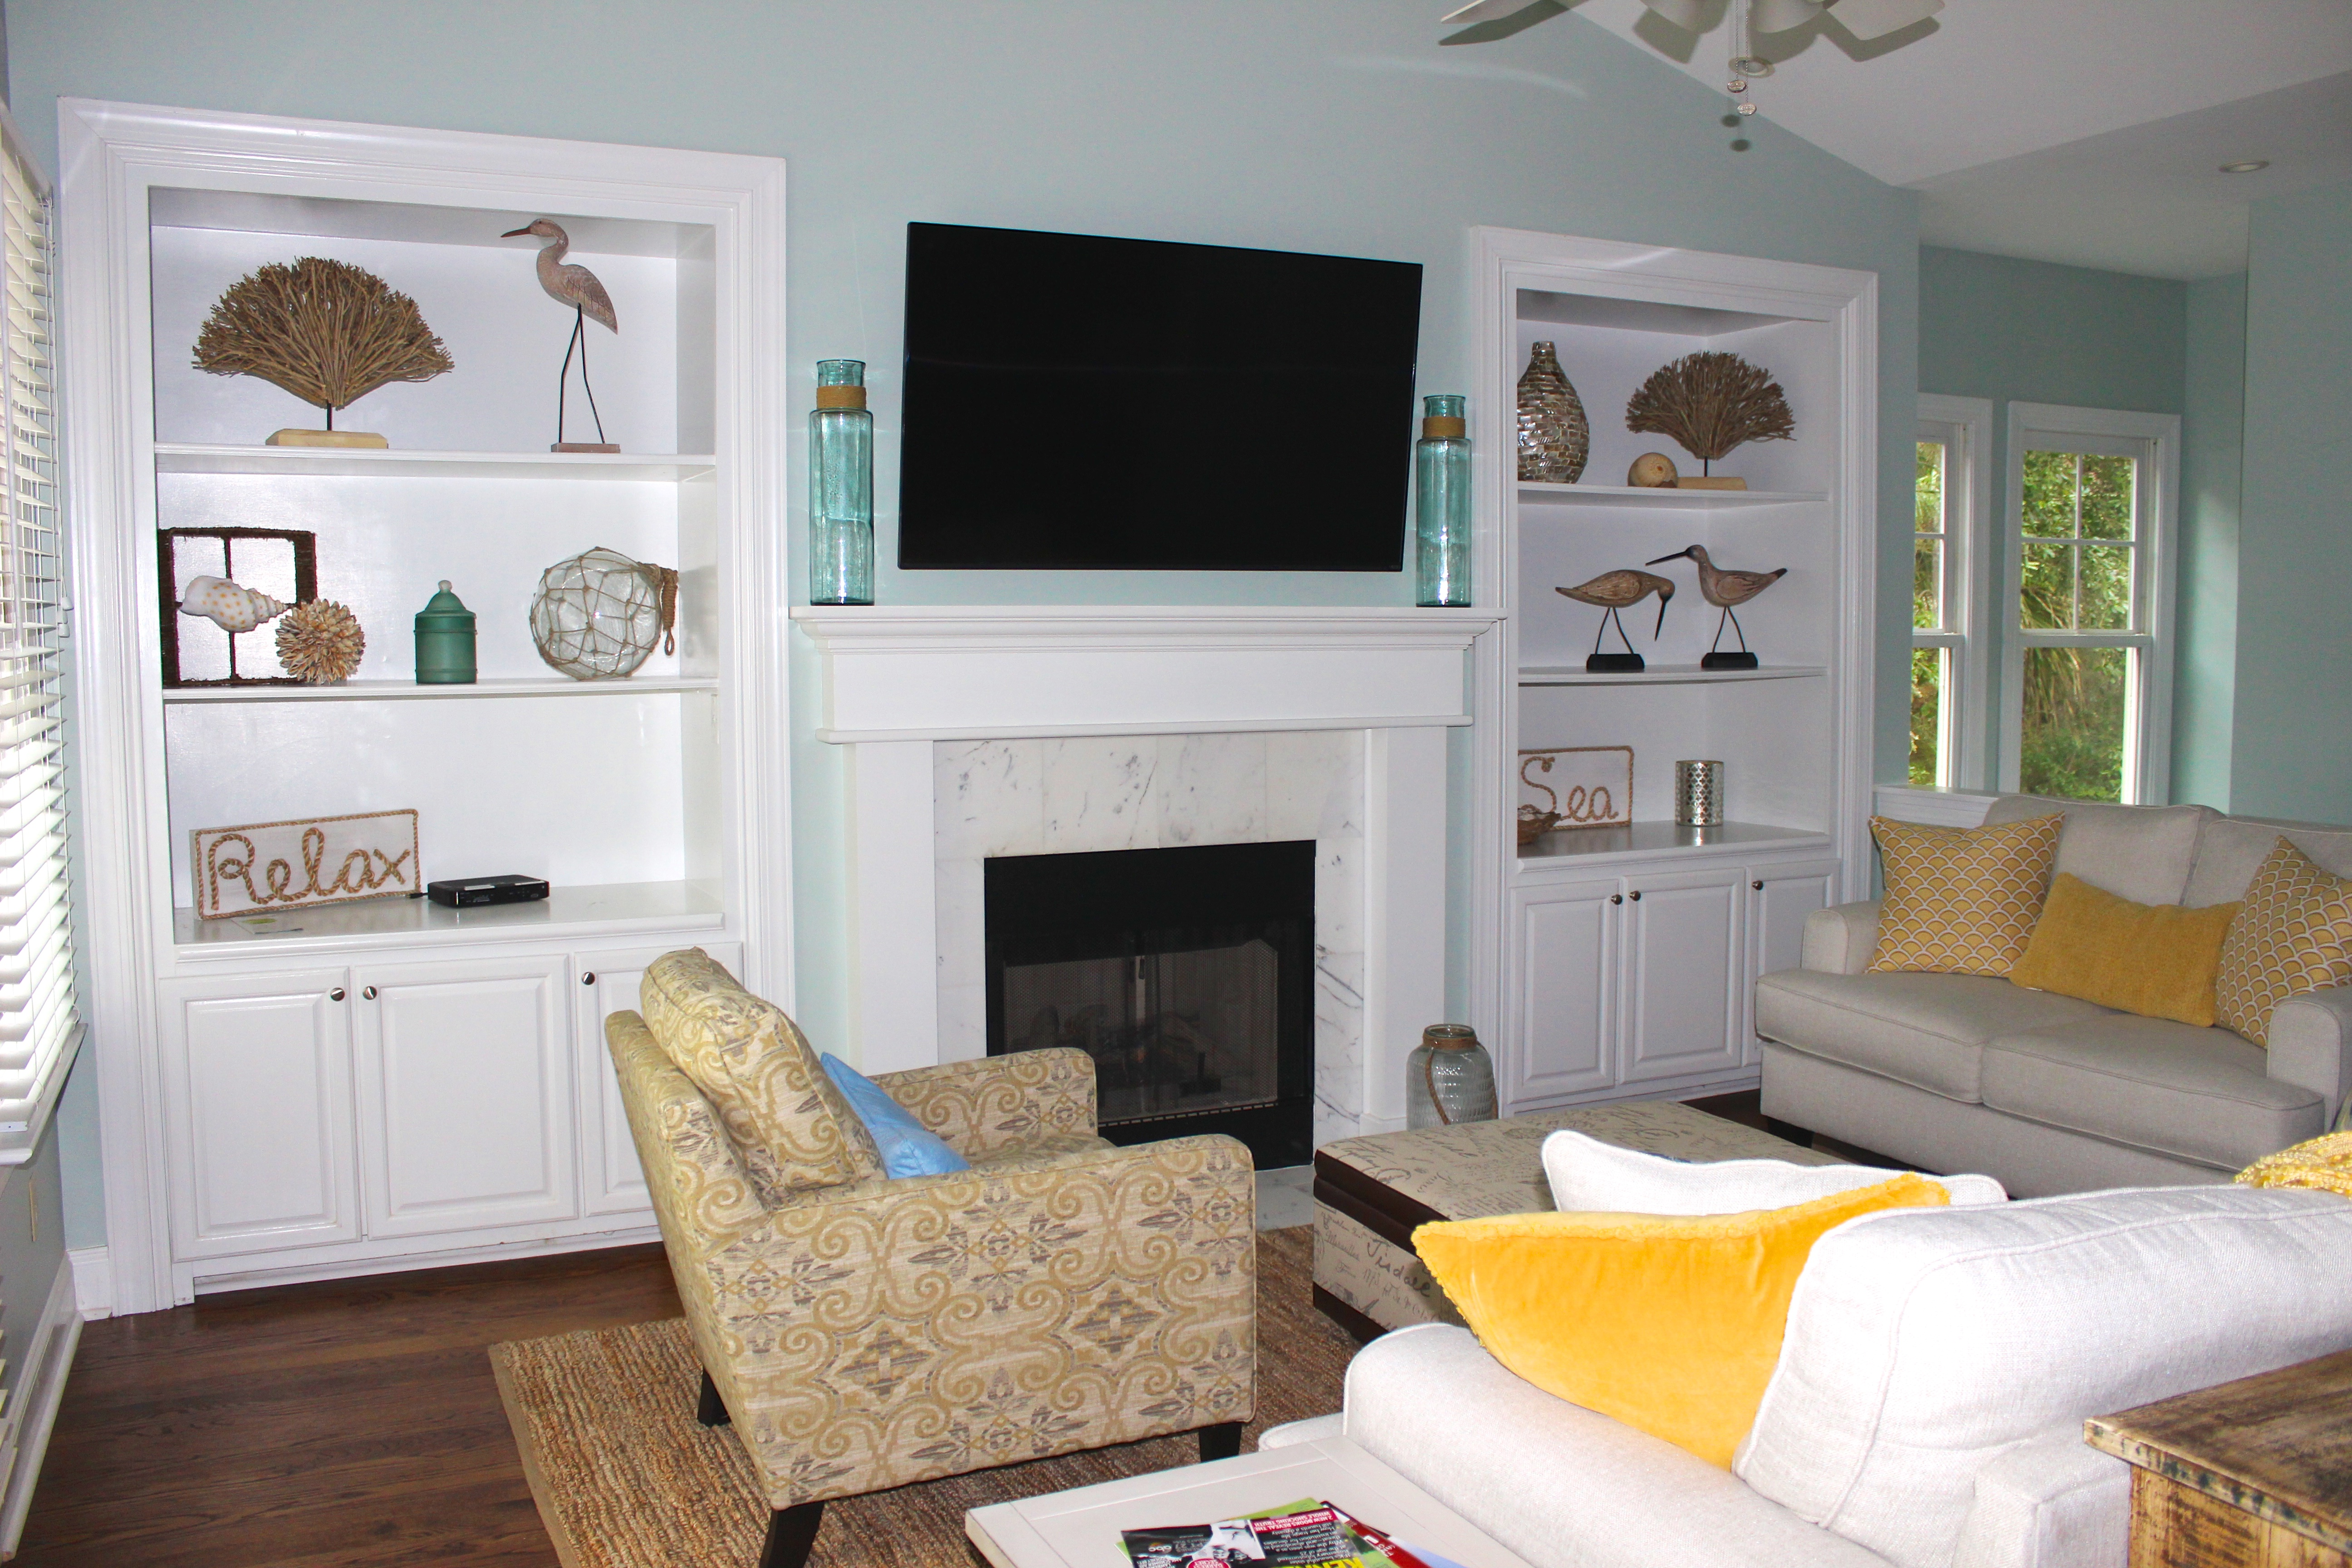 Watch your favorite shows or movies on the large wall mounted HDTV.